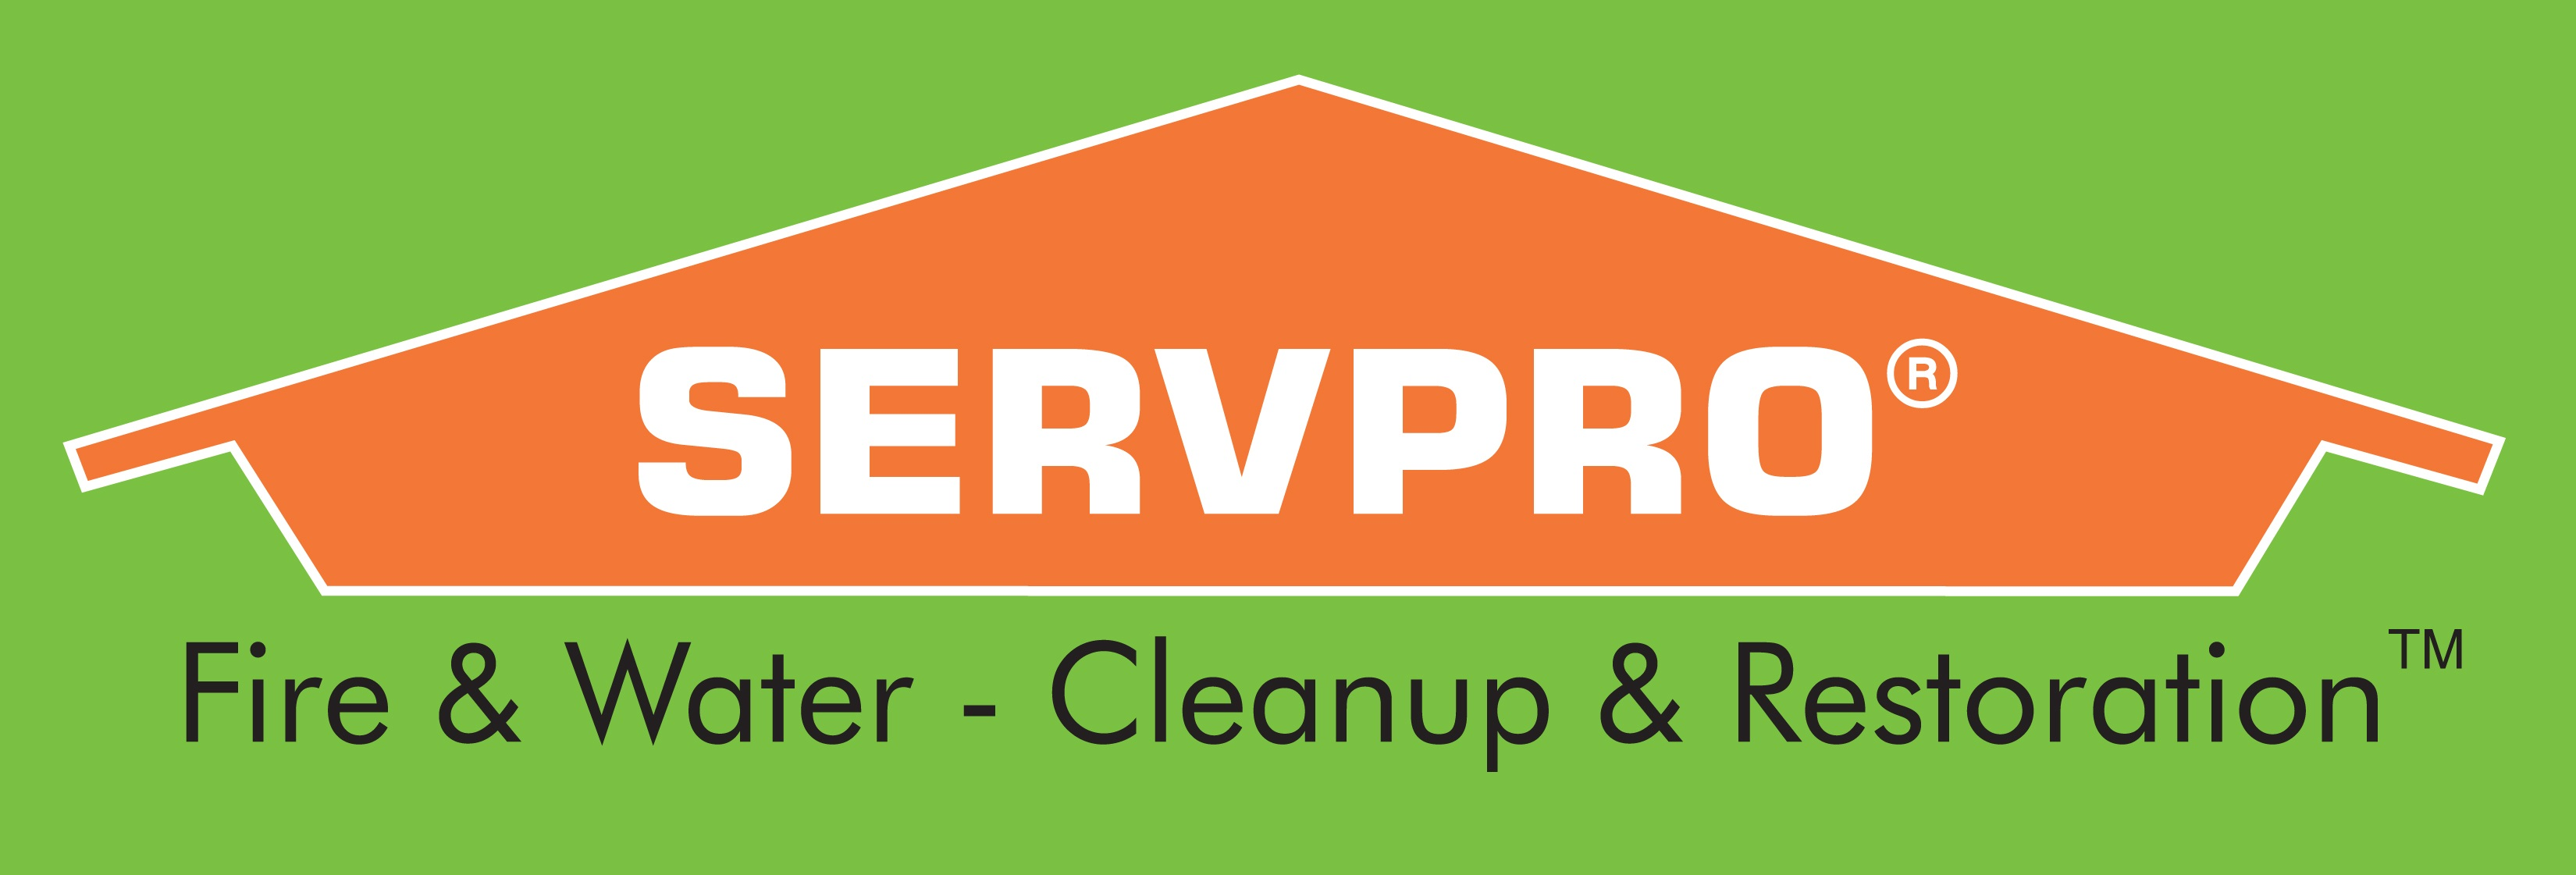 ServProHouse Orange & Green